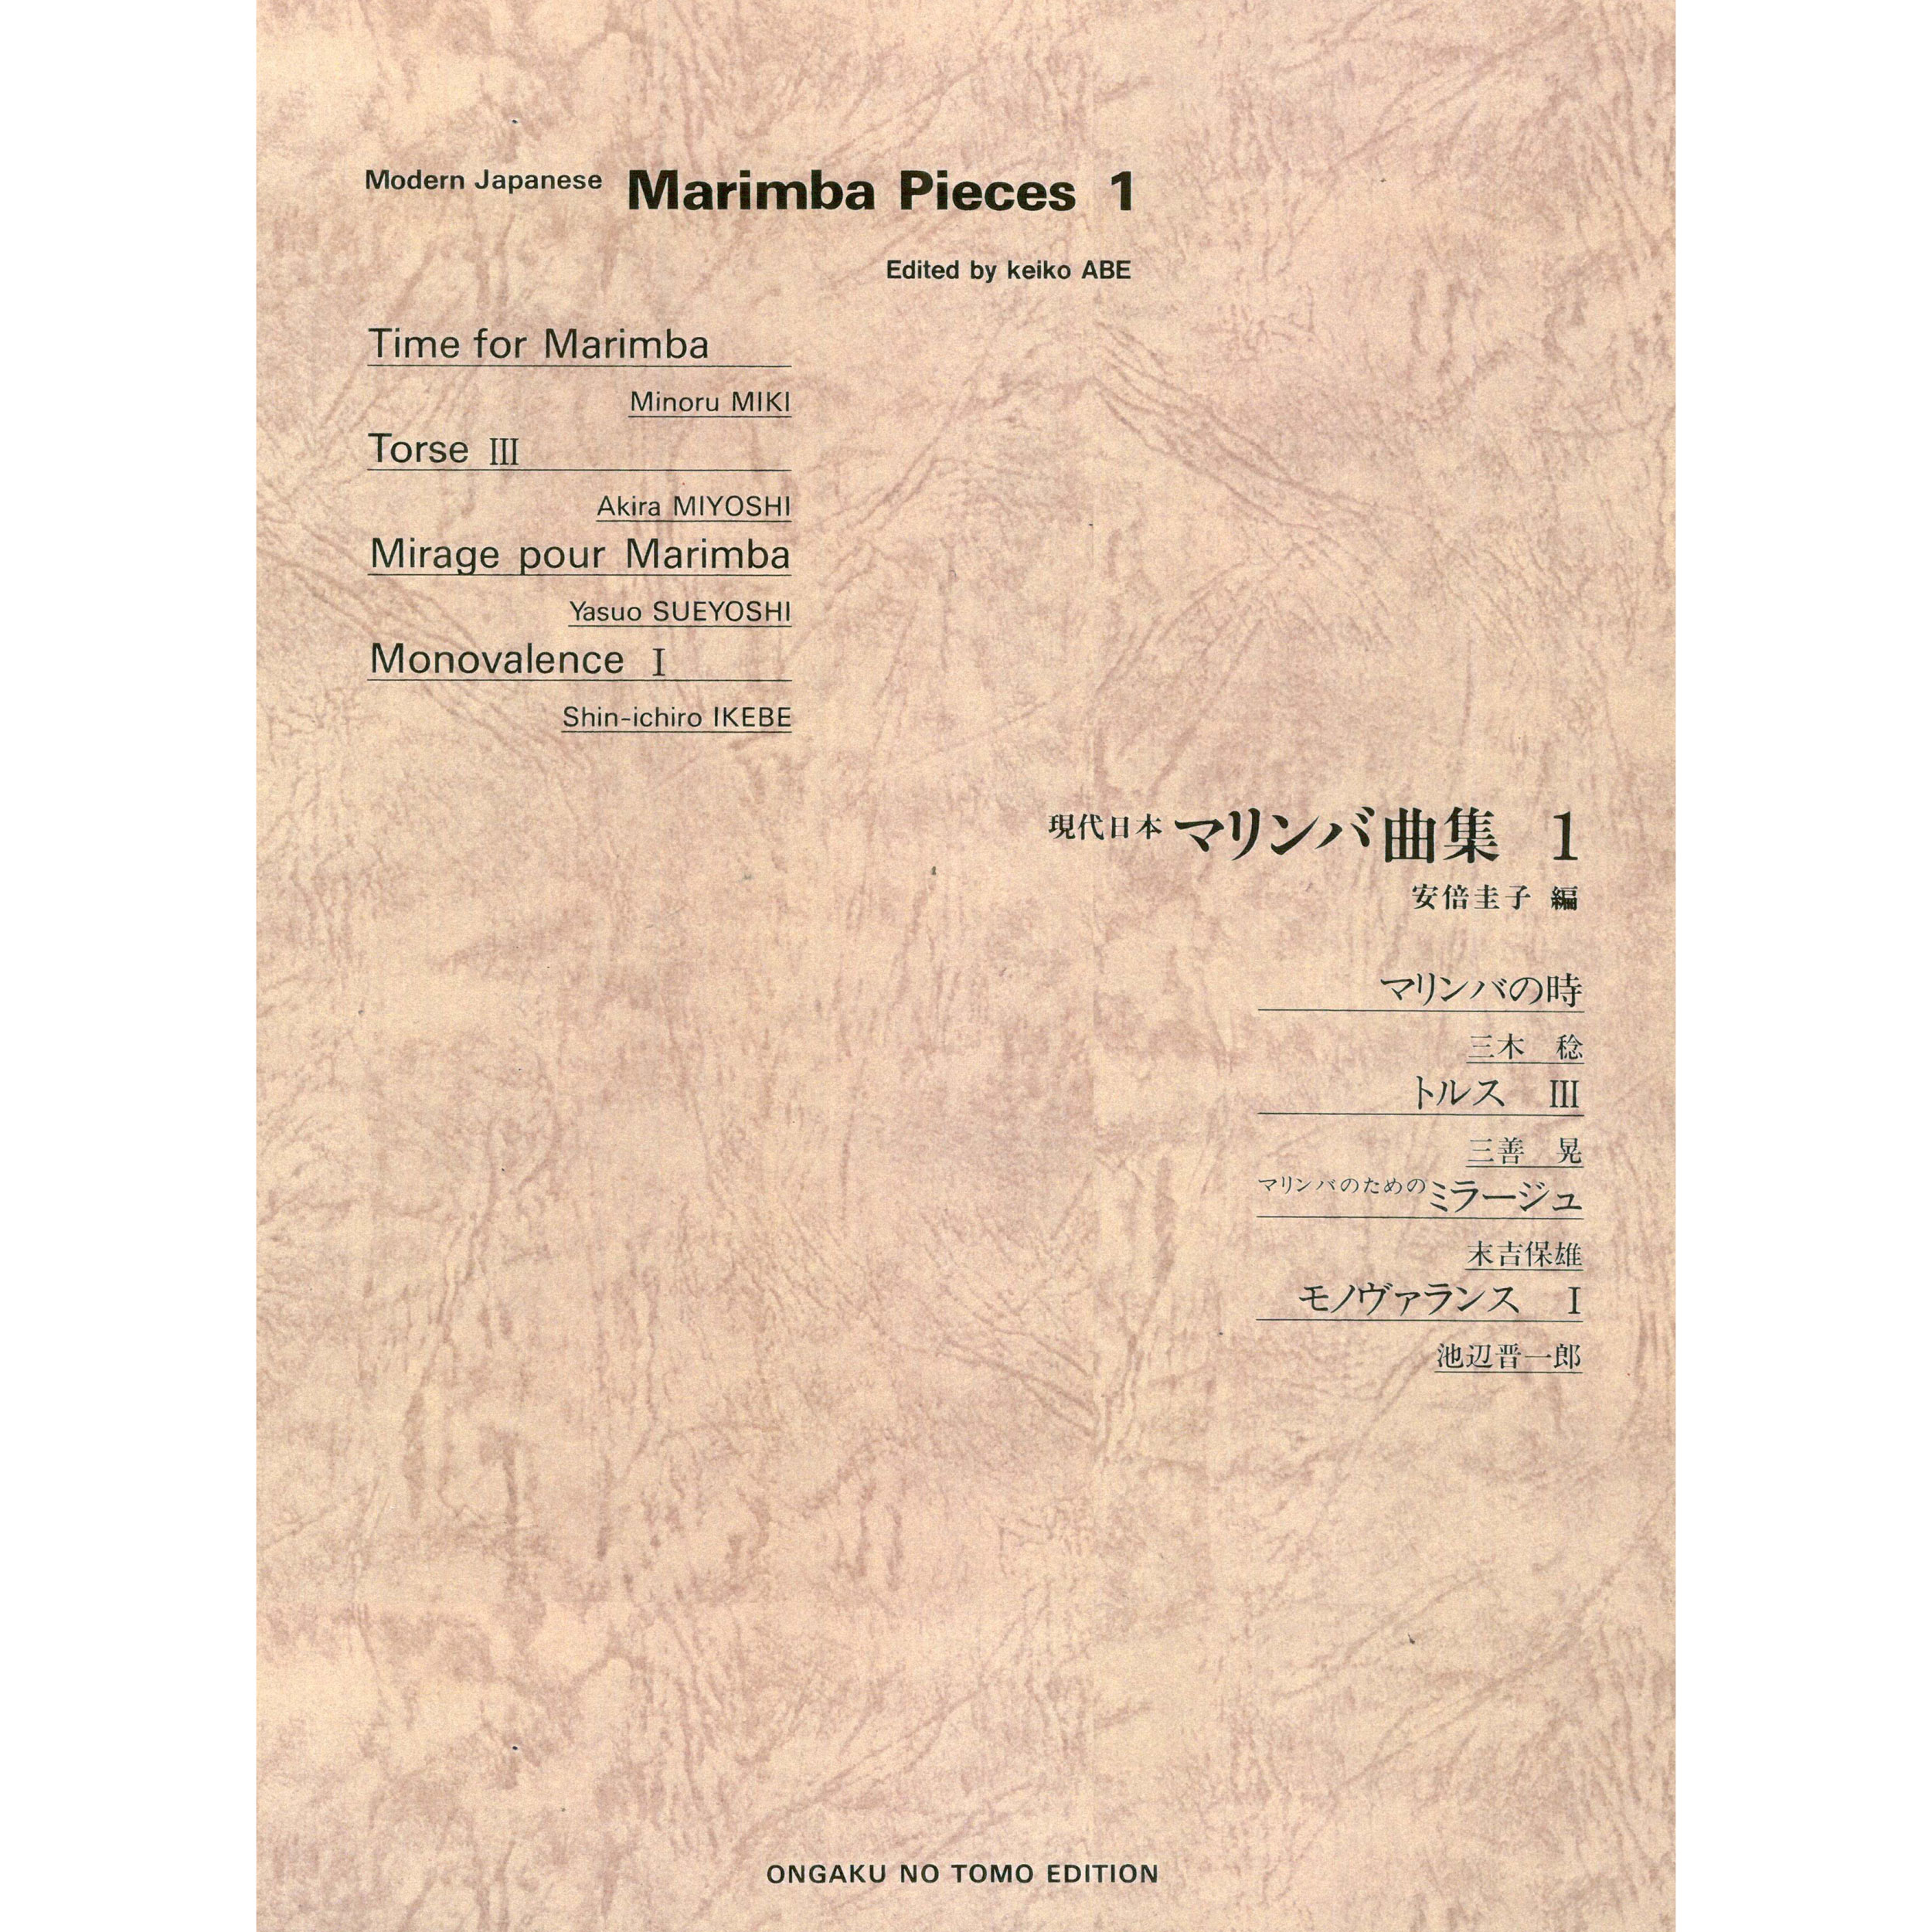 Modern Japanese Marimba Pieces 1 by Miki, Miyoshi, Sueyoshi, and Ikebe